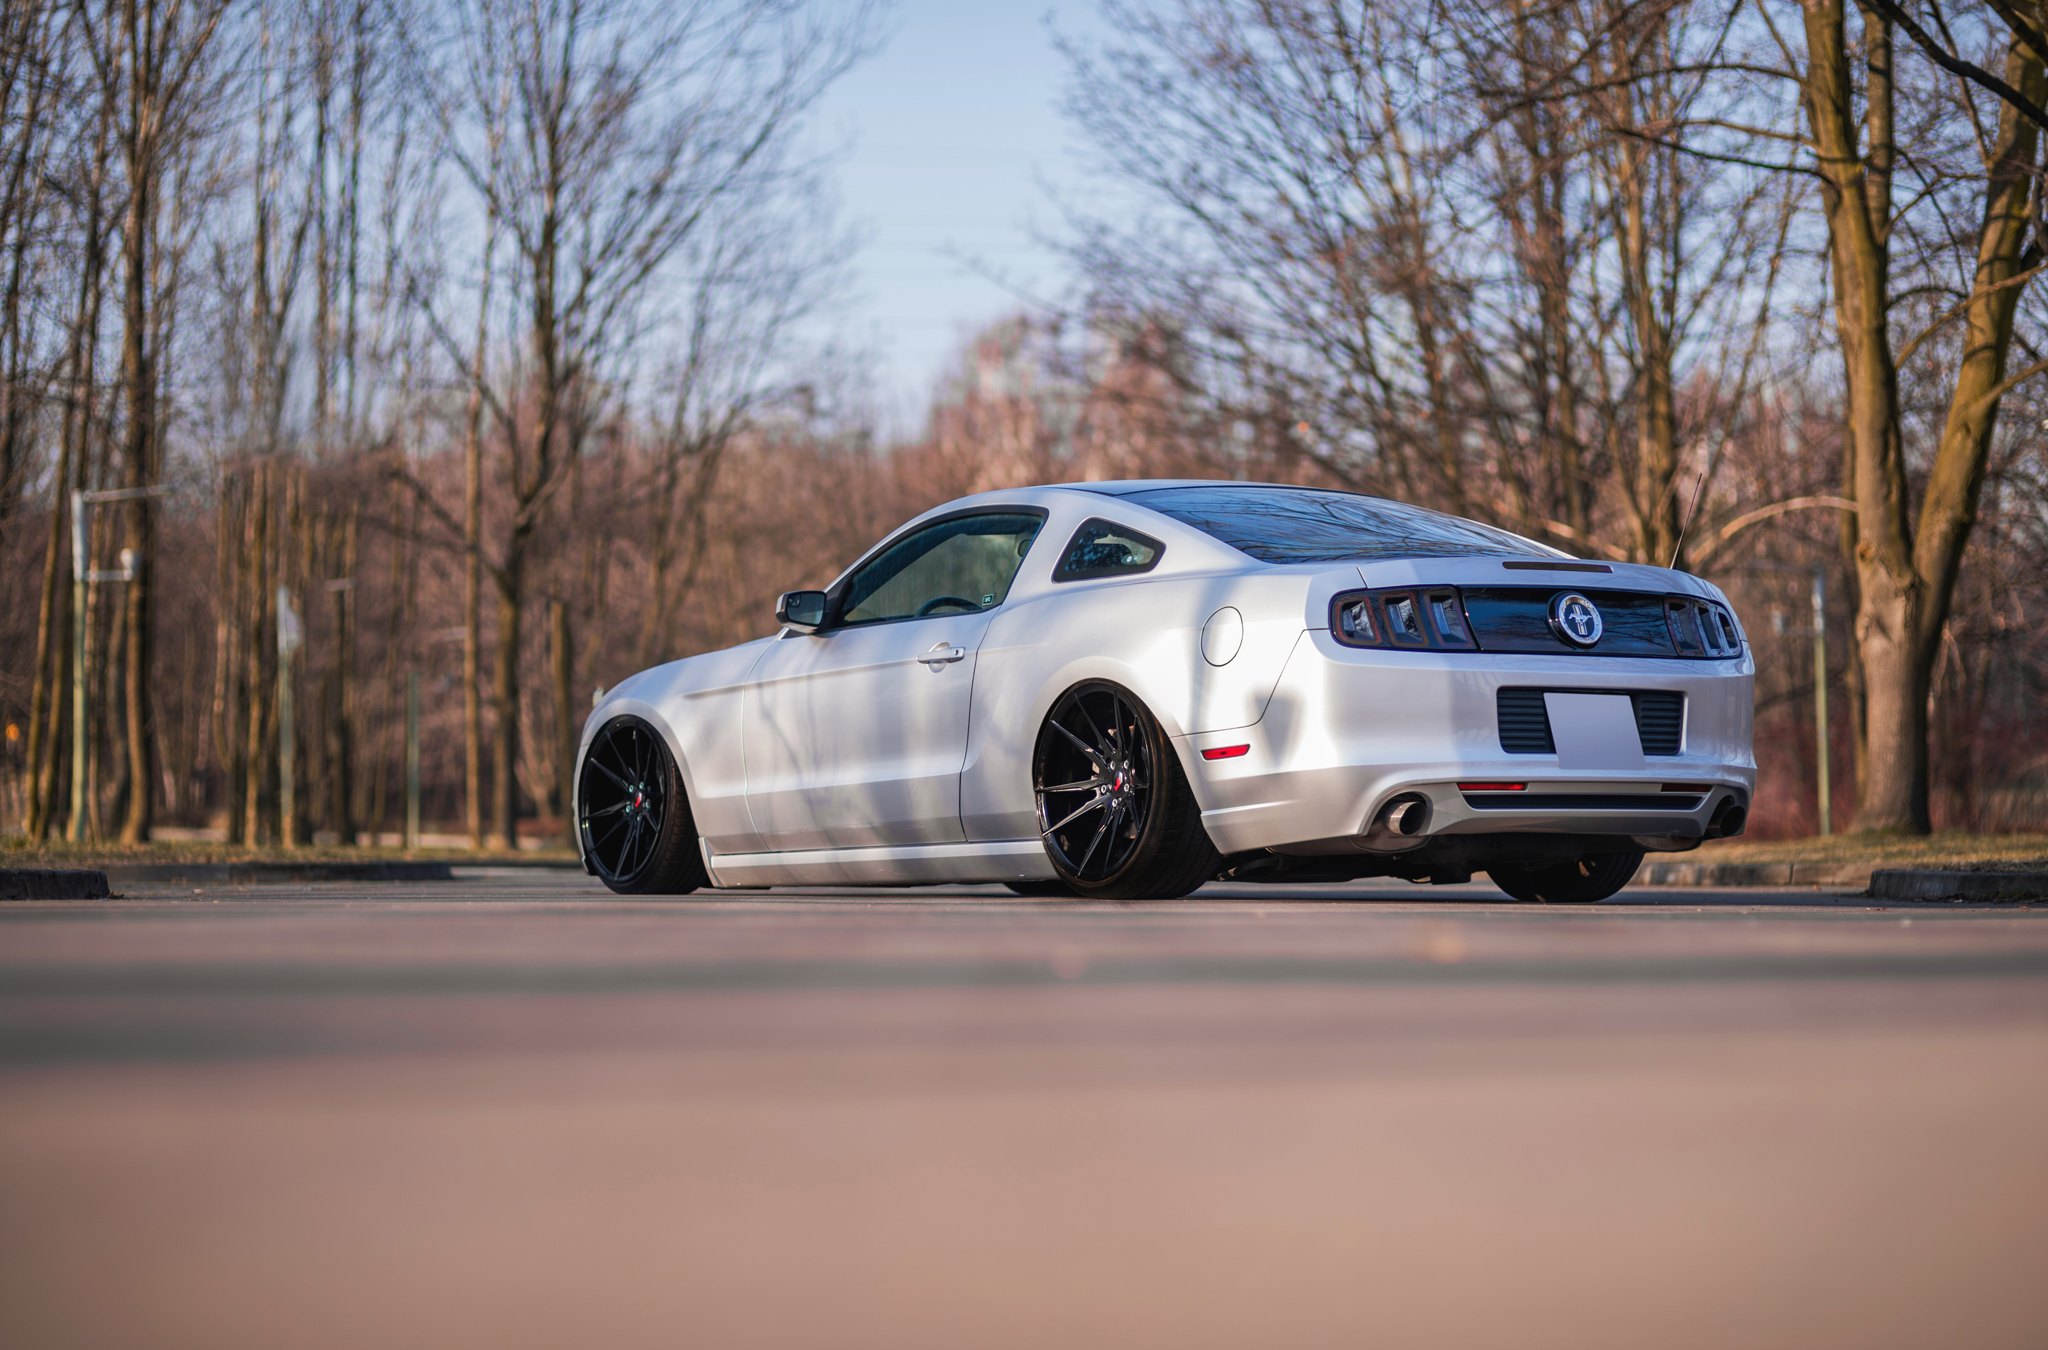 Solid Gray Ford Mustang Has Its Face Revised With Front Bumper And Rear Diffuser Aftermarket Photo By Jr Wheels